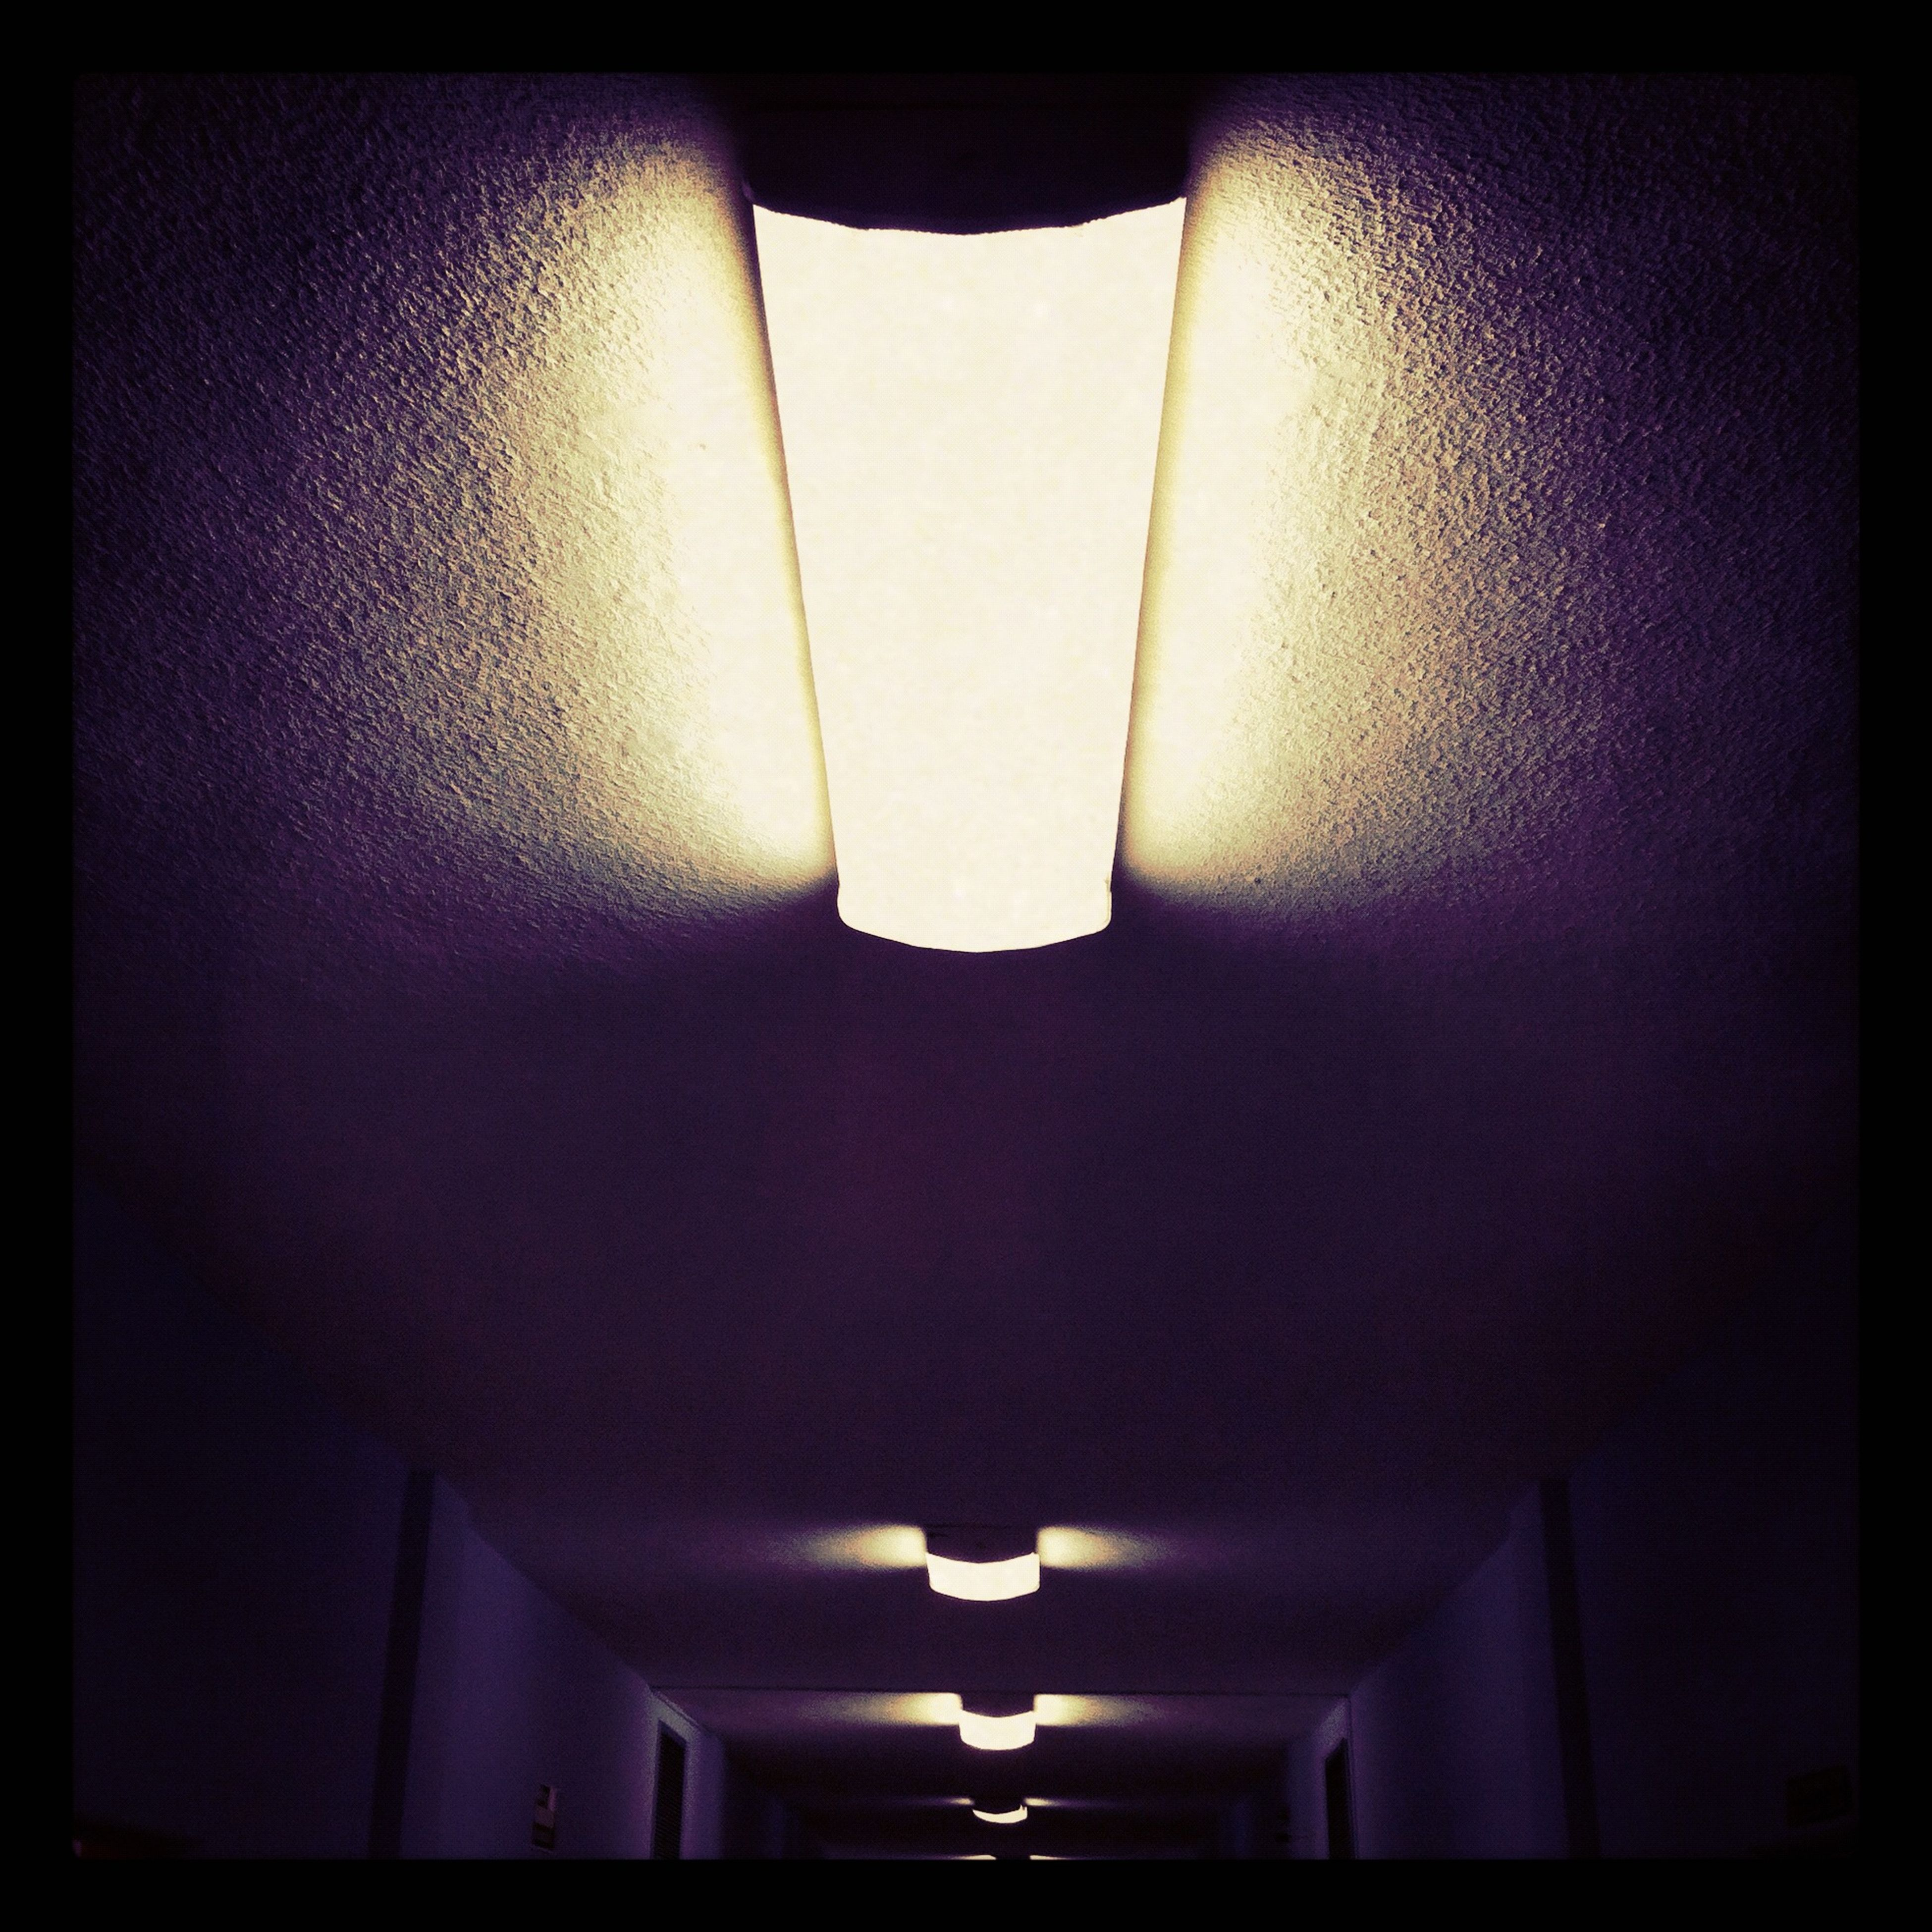 indoors, illuminated, lighting equipment, low angle view, ceiling, hanging, electric lamp, built structure, architecture, electricity, auto post production filter, light - natural phenomenon, transfer print, wall - building feature, electric light, no people, decoration, lamp, home interior, light